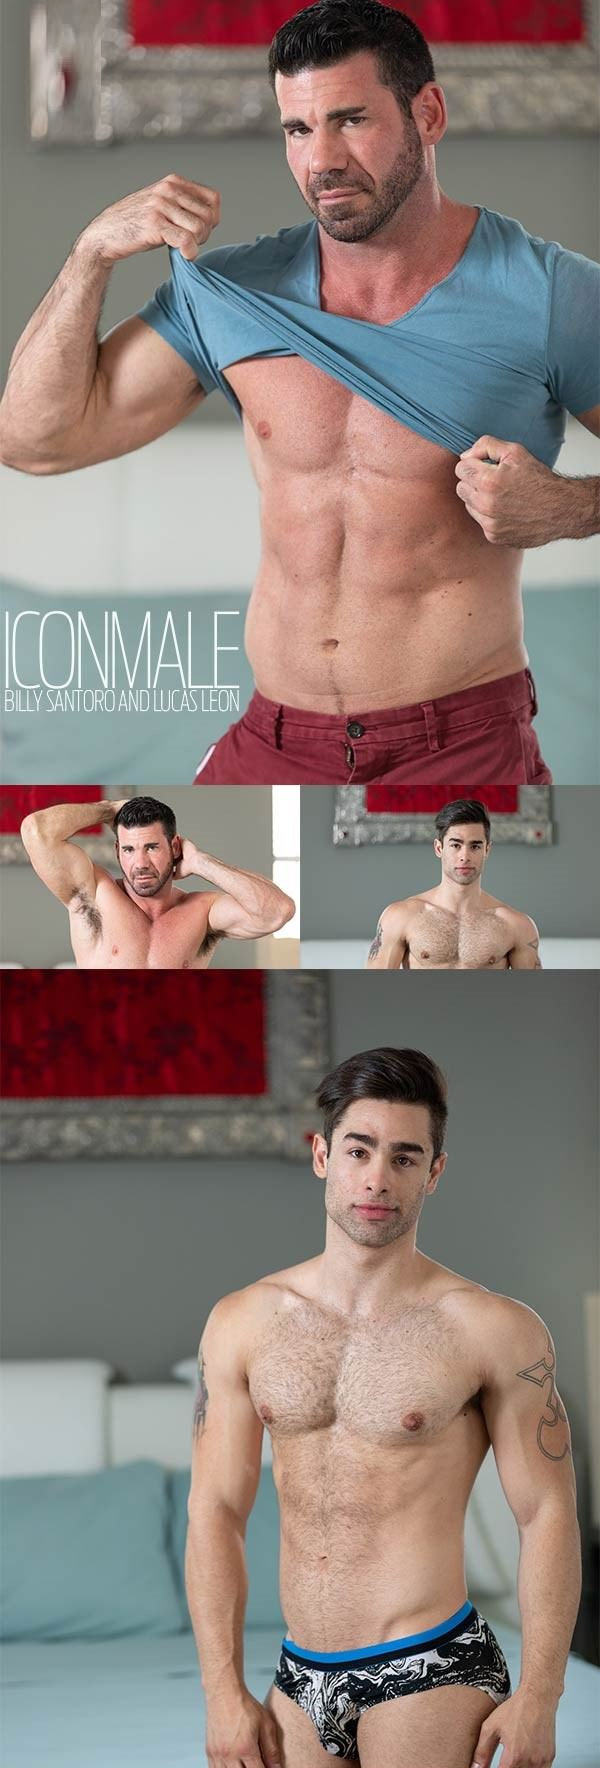 IconMale Last Resort! Billy Santoro Lucas Leon